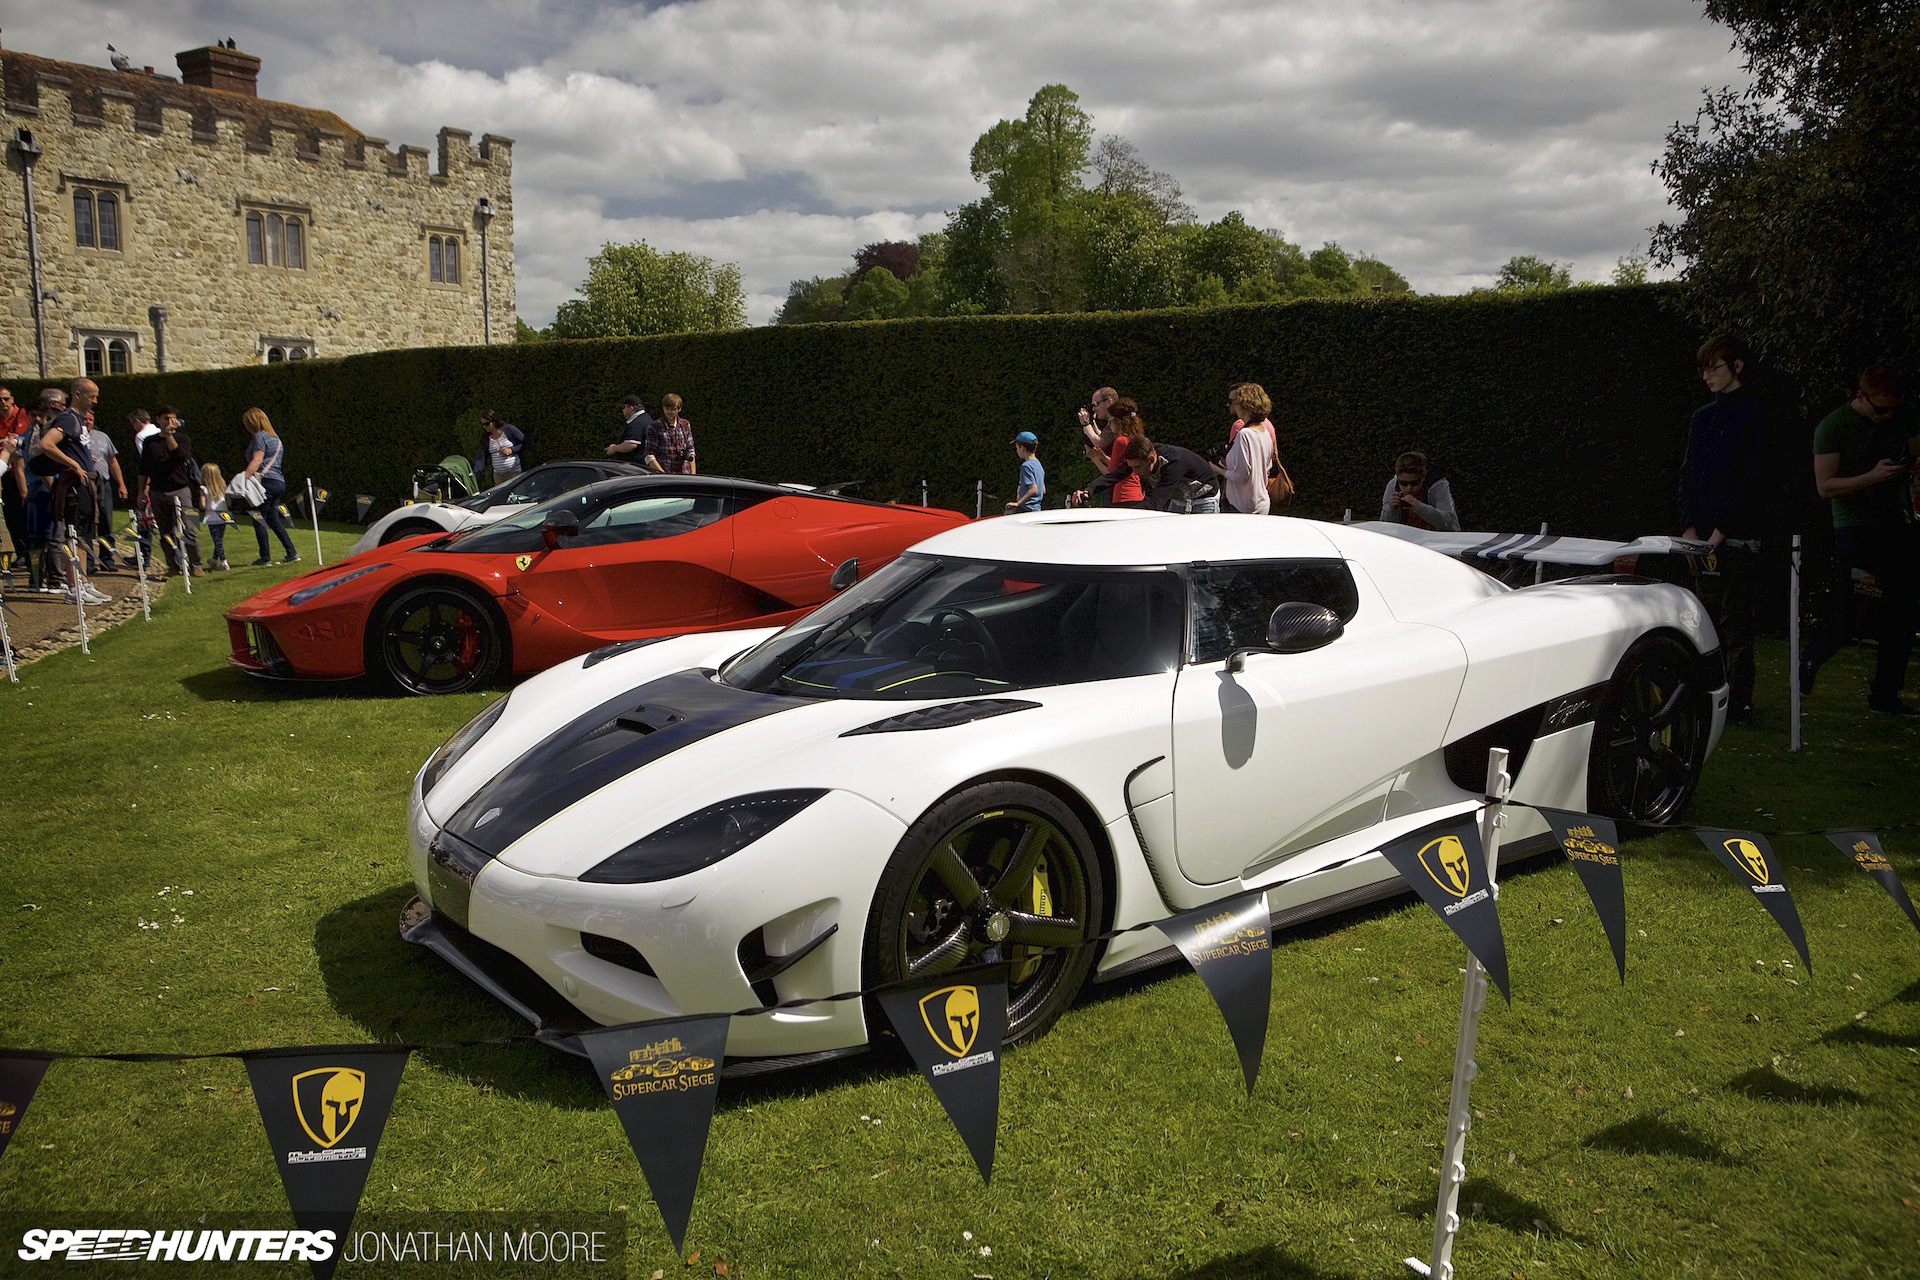 Under Siege: Supercars Storm The Castle - Speedhunters